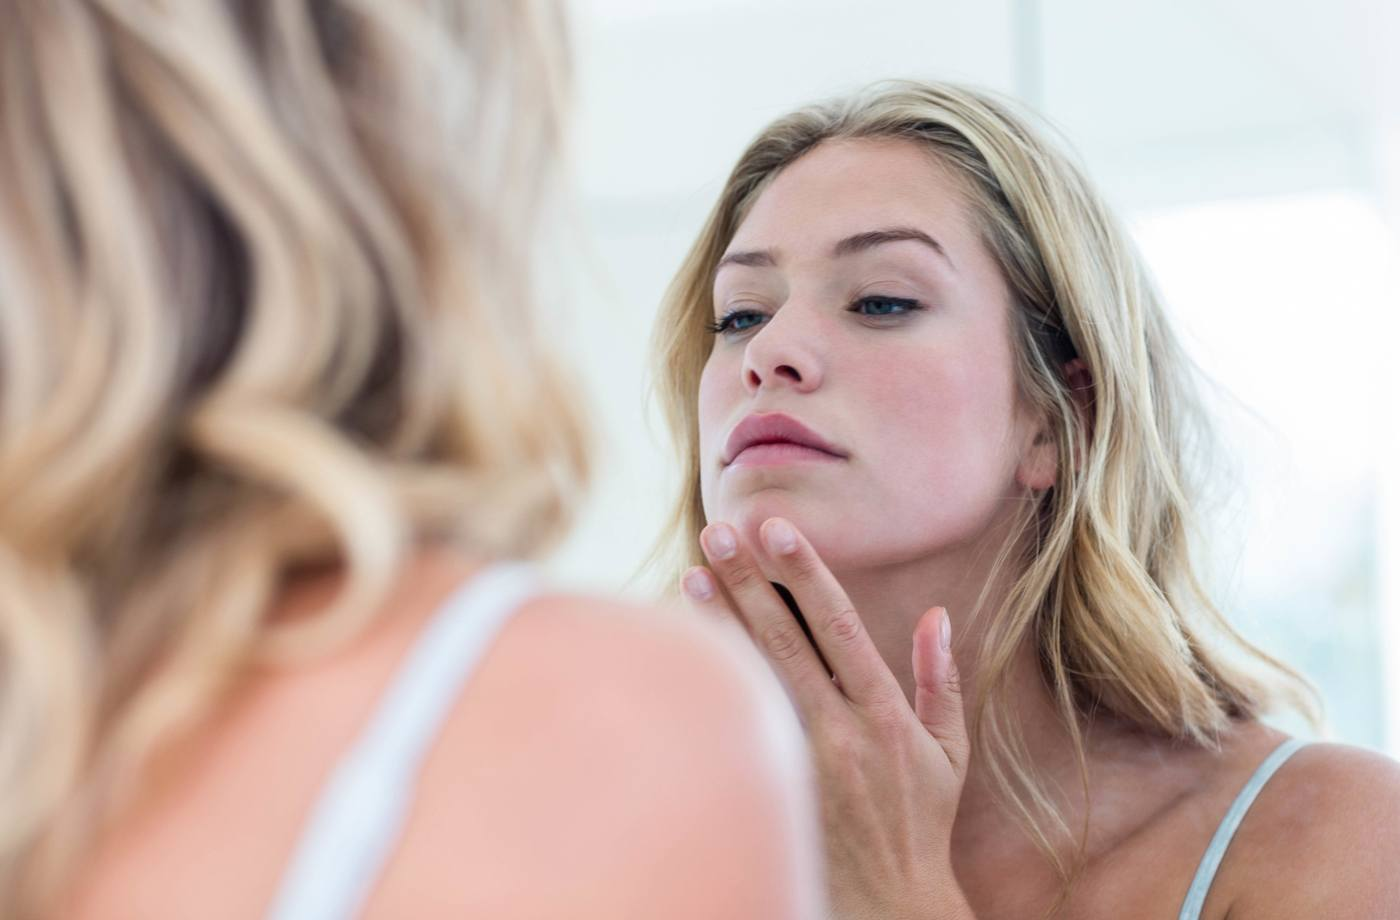 Thumbnail for 6 common zit myths dermatologists wish you would stop believing